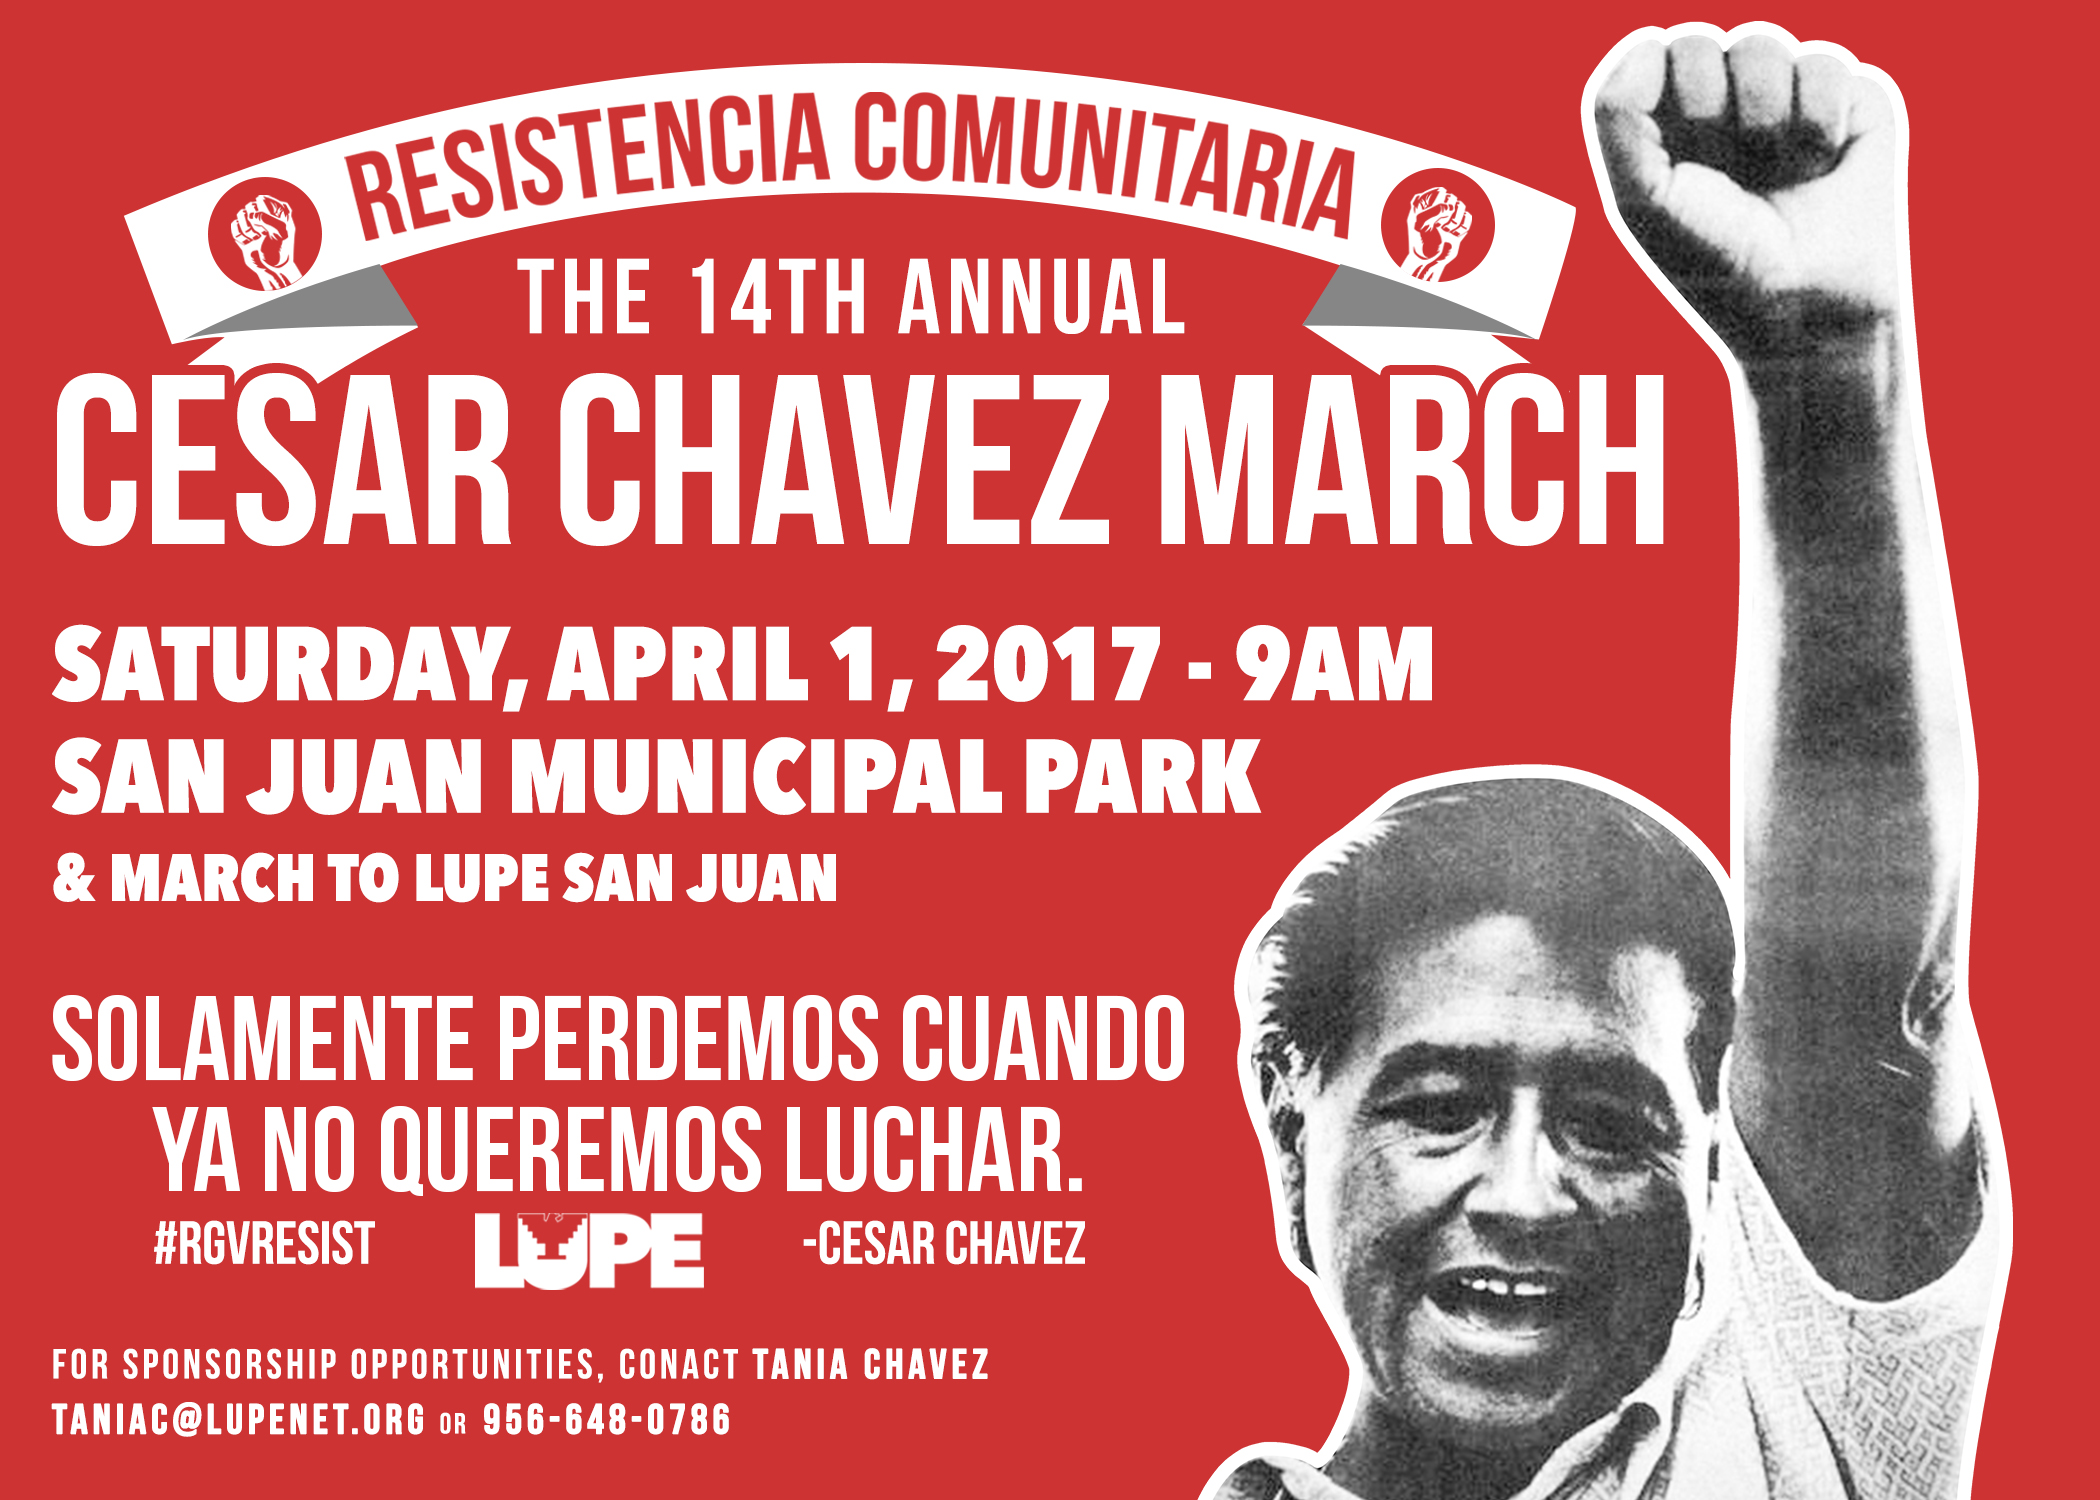 marcha-save-the-date.jpg